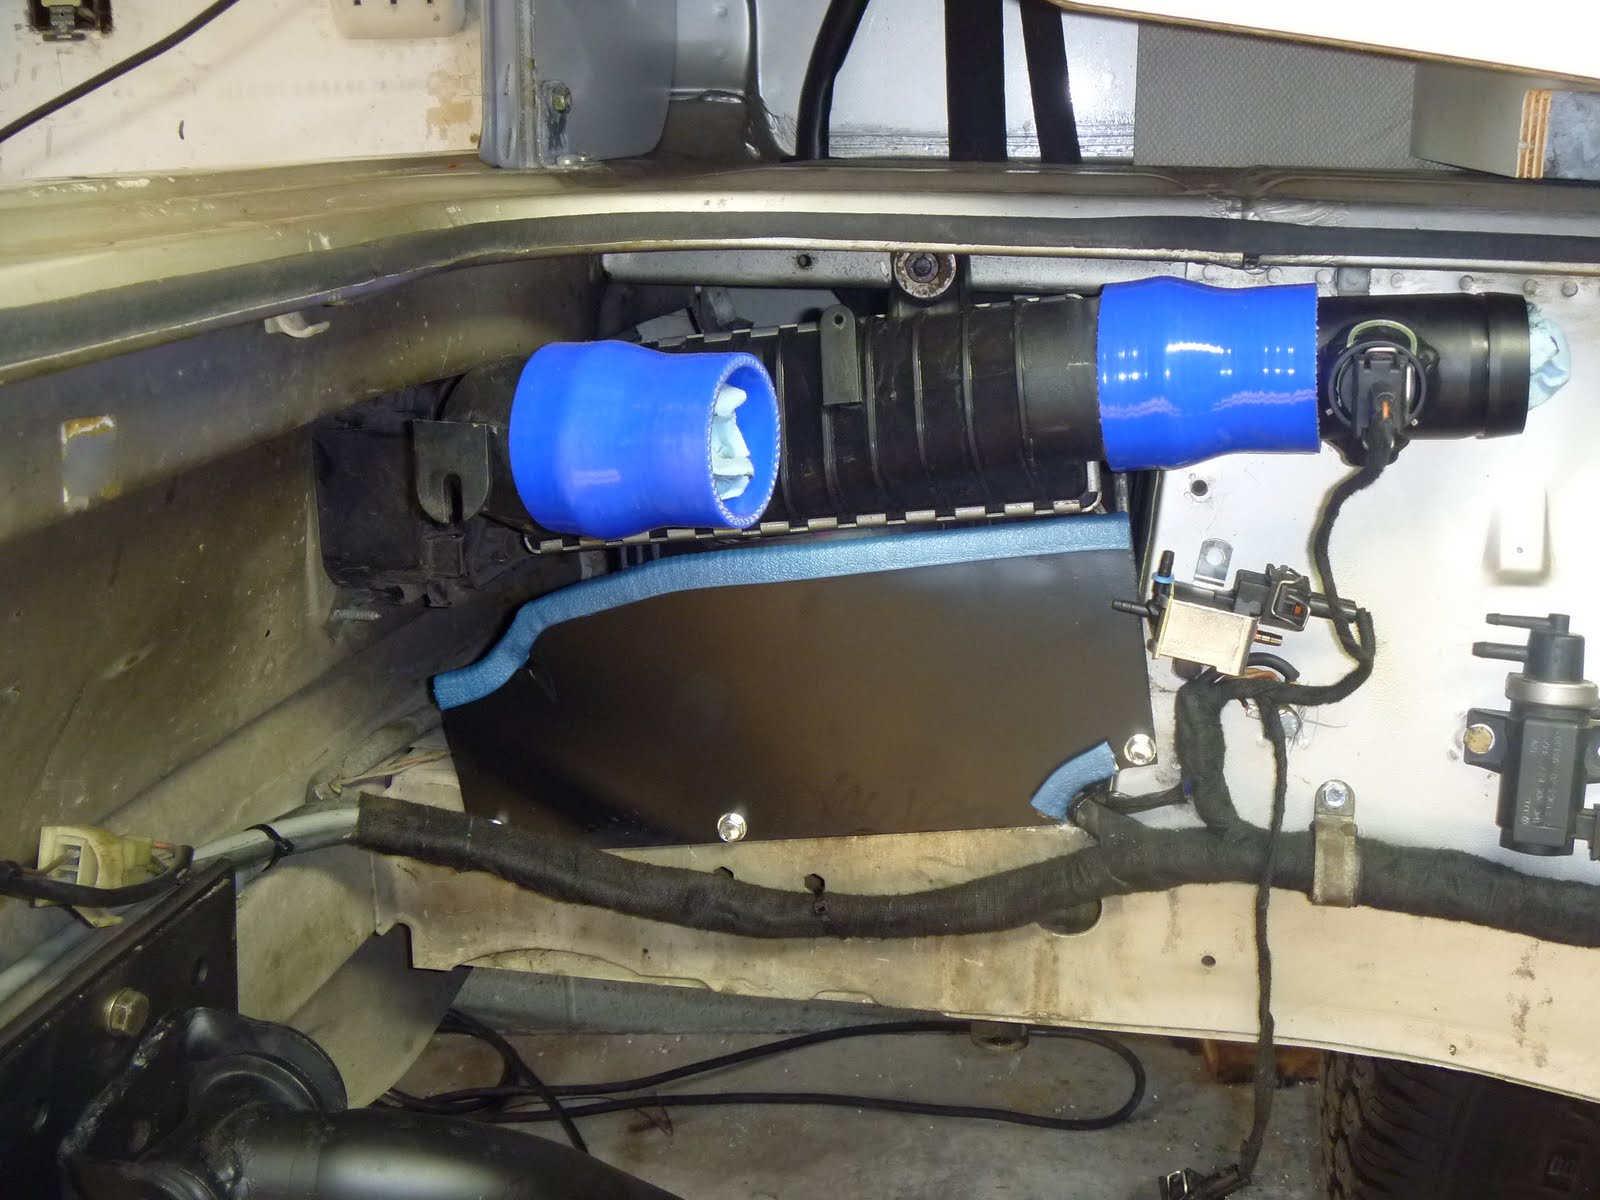 medium resolution of the bundle loom right below them is our modified ahu tdi harness installed and completely interfaced with the vanagon wiring harness in the junction box to